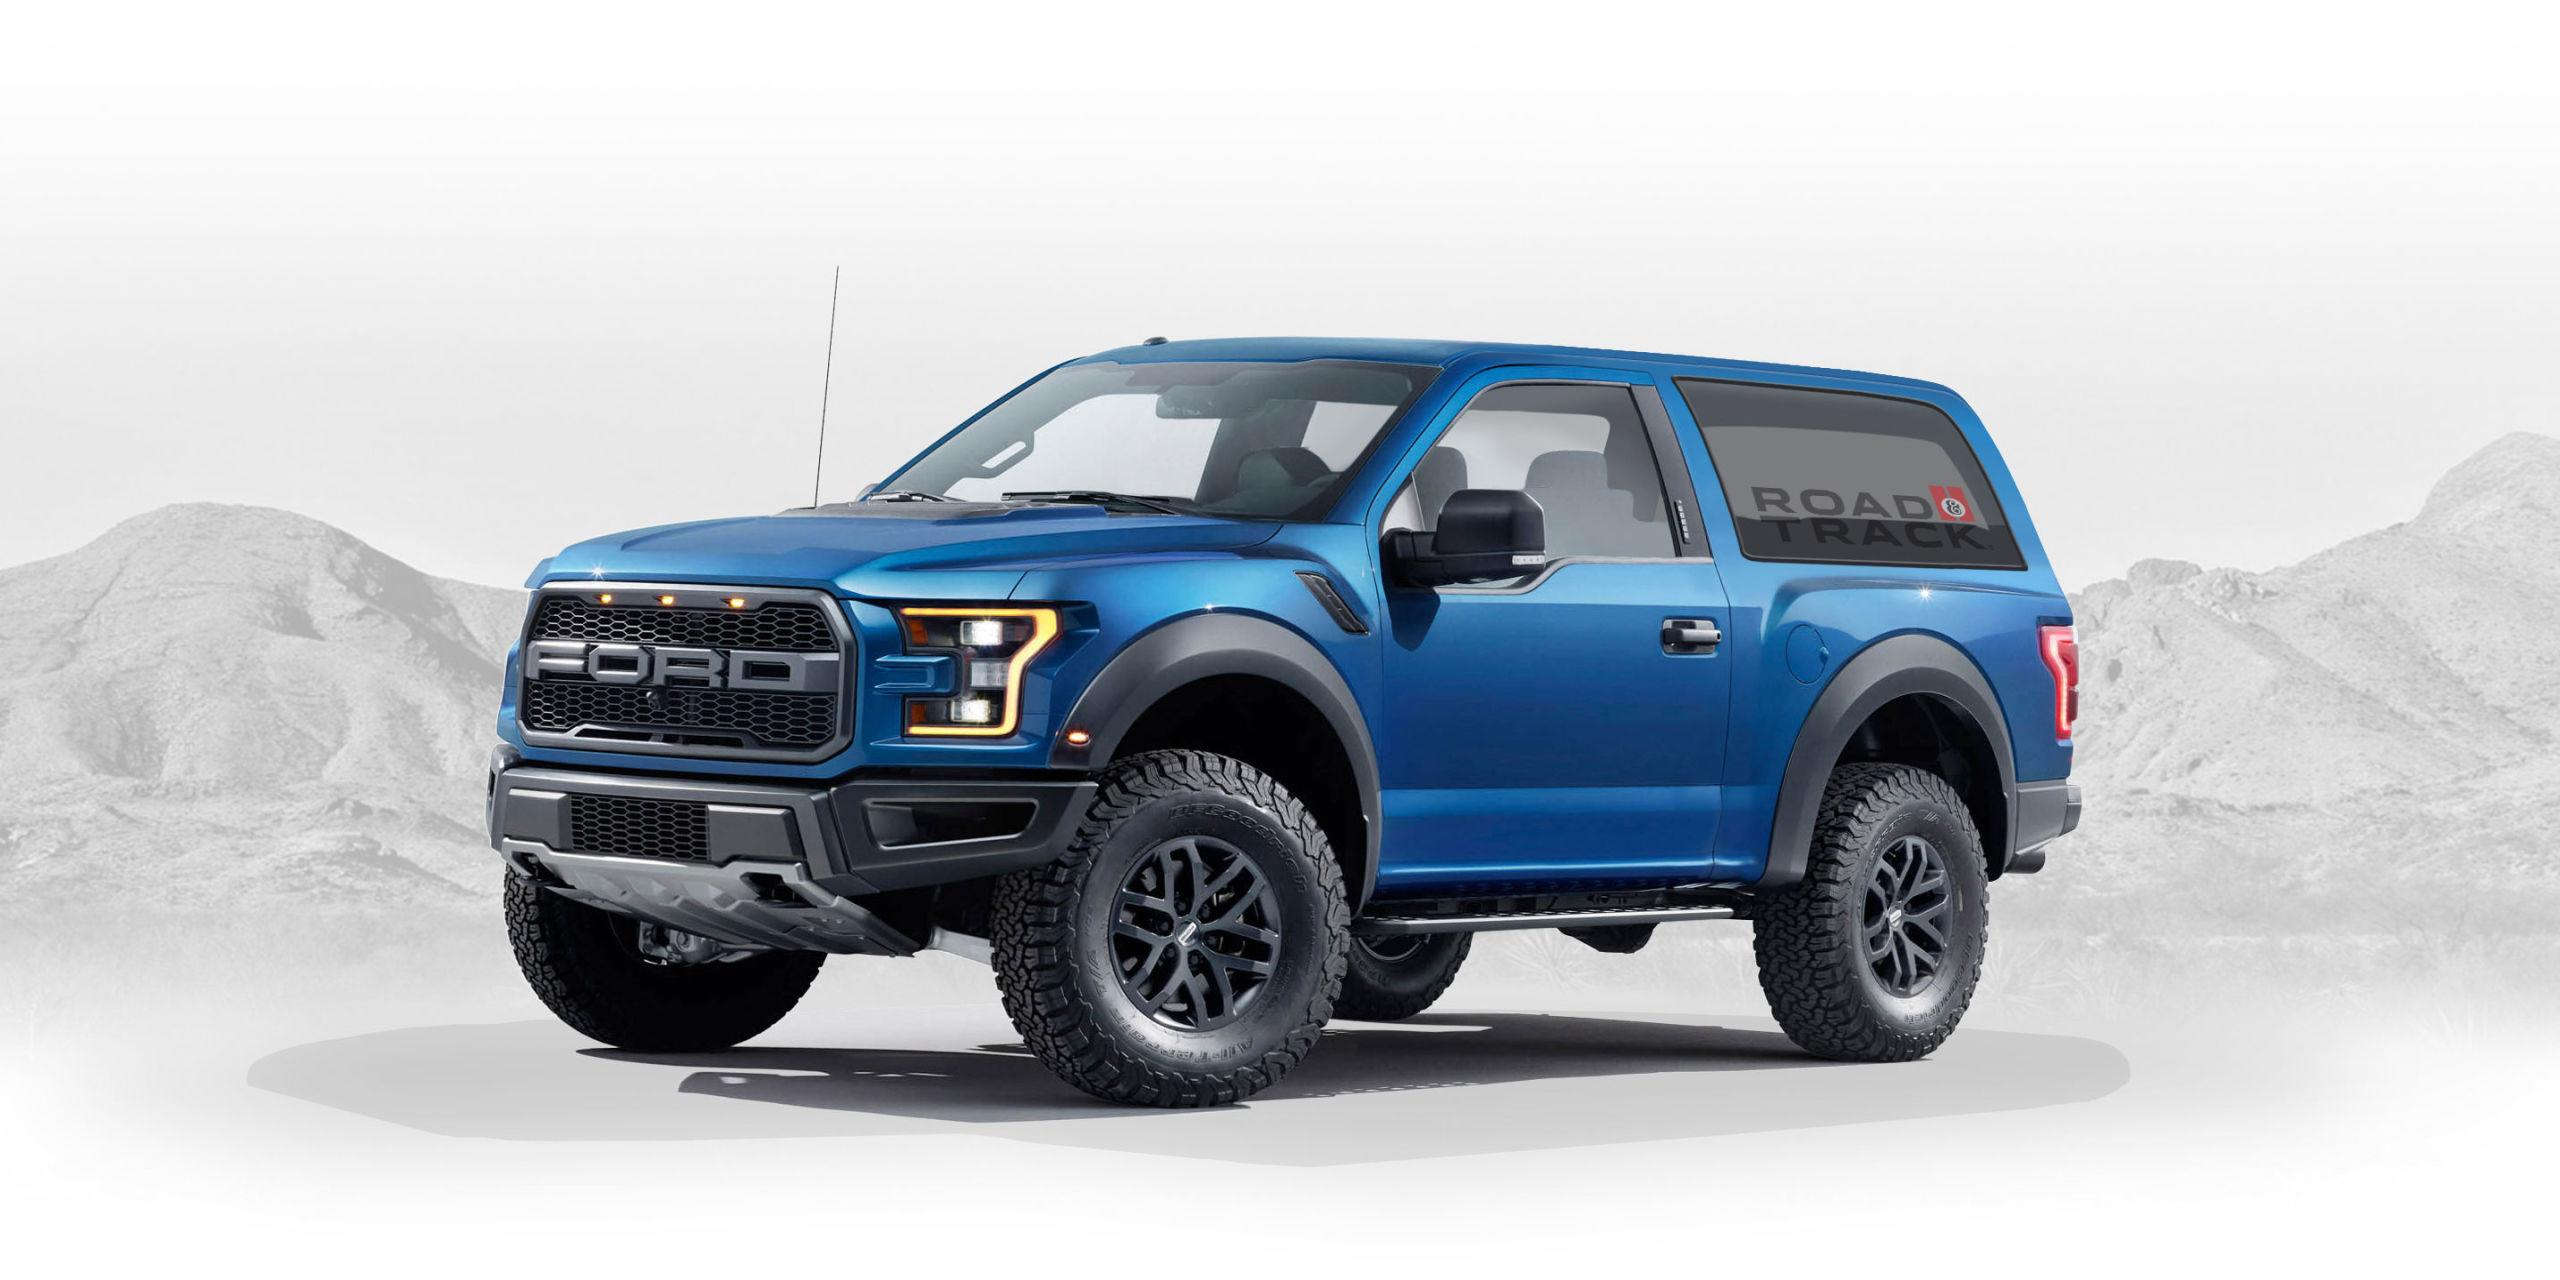 2016 Ford Bronco >> Confirmed The New Ford Bronco Is Coming For 2020